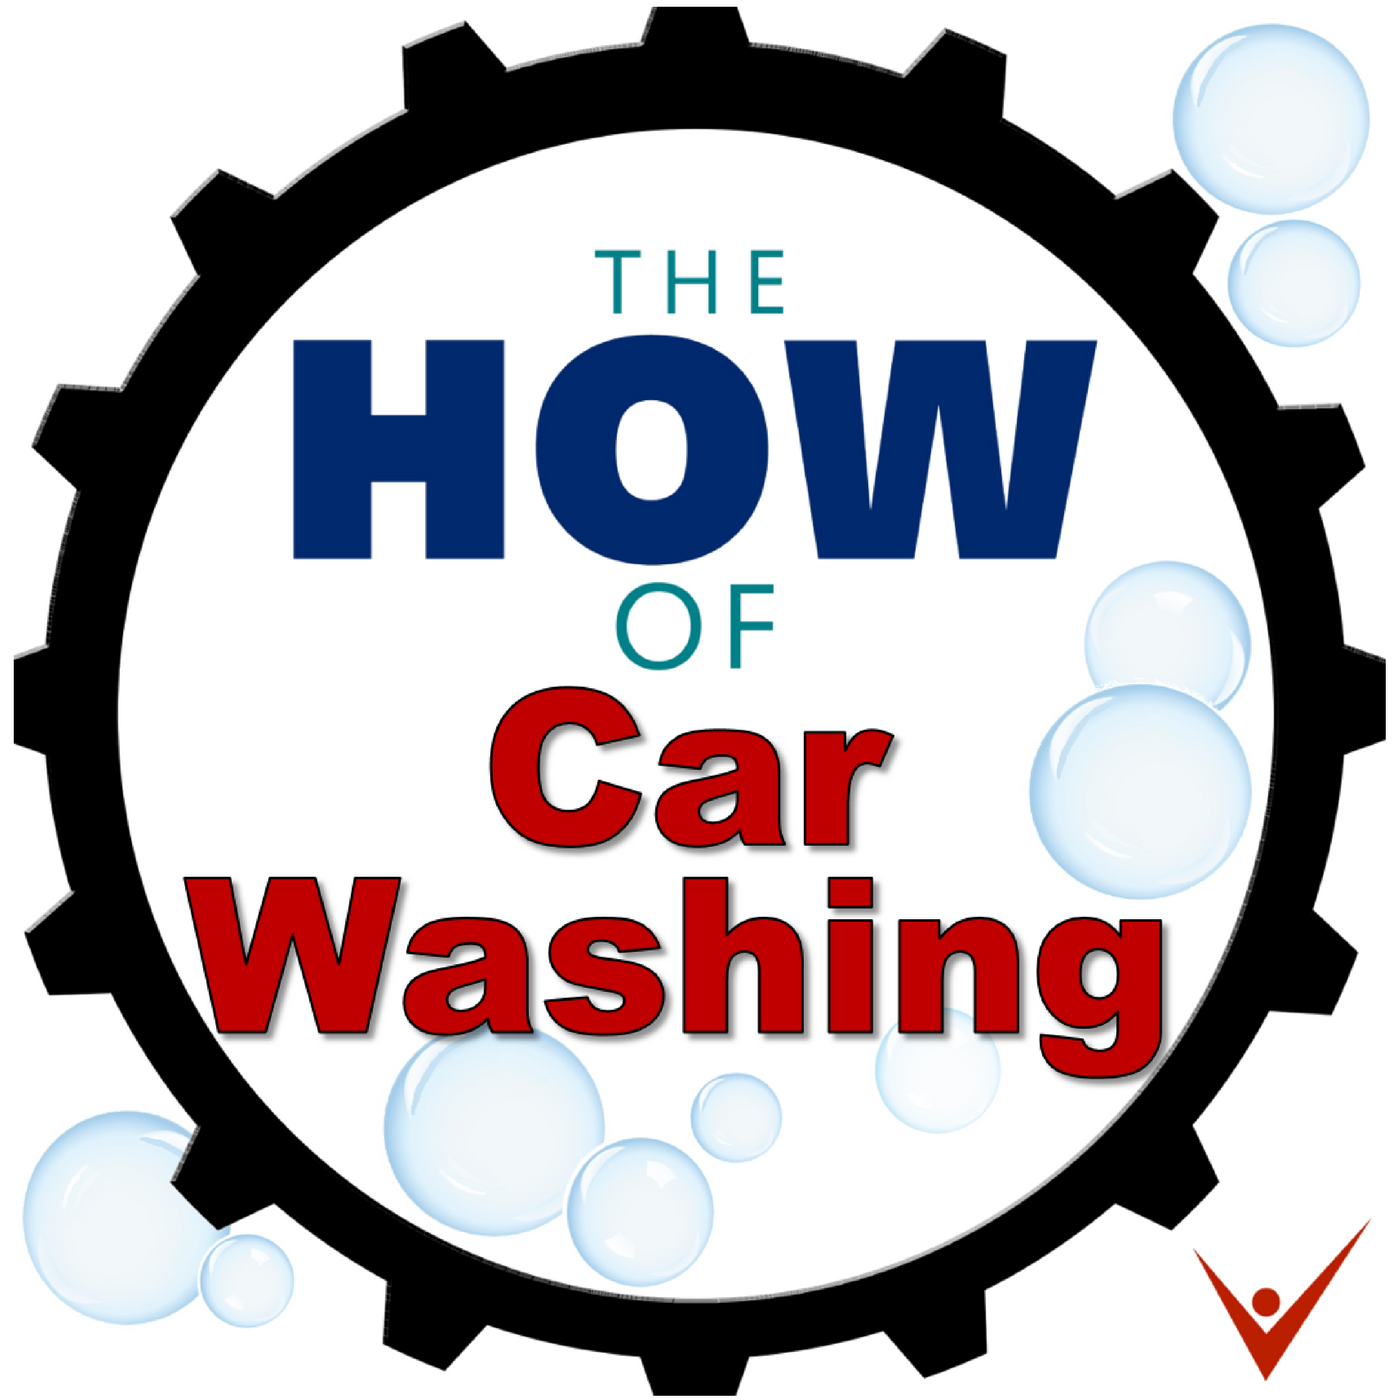 The How of Car Washing - How to operate & grow a carwashing business. show art